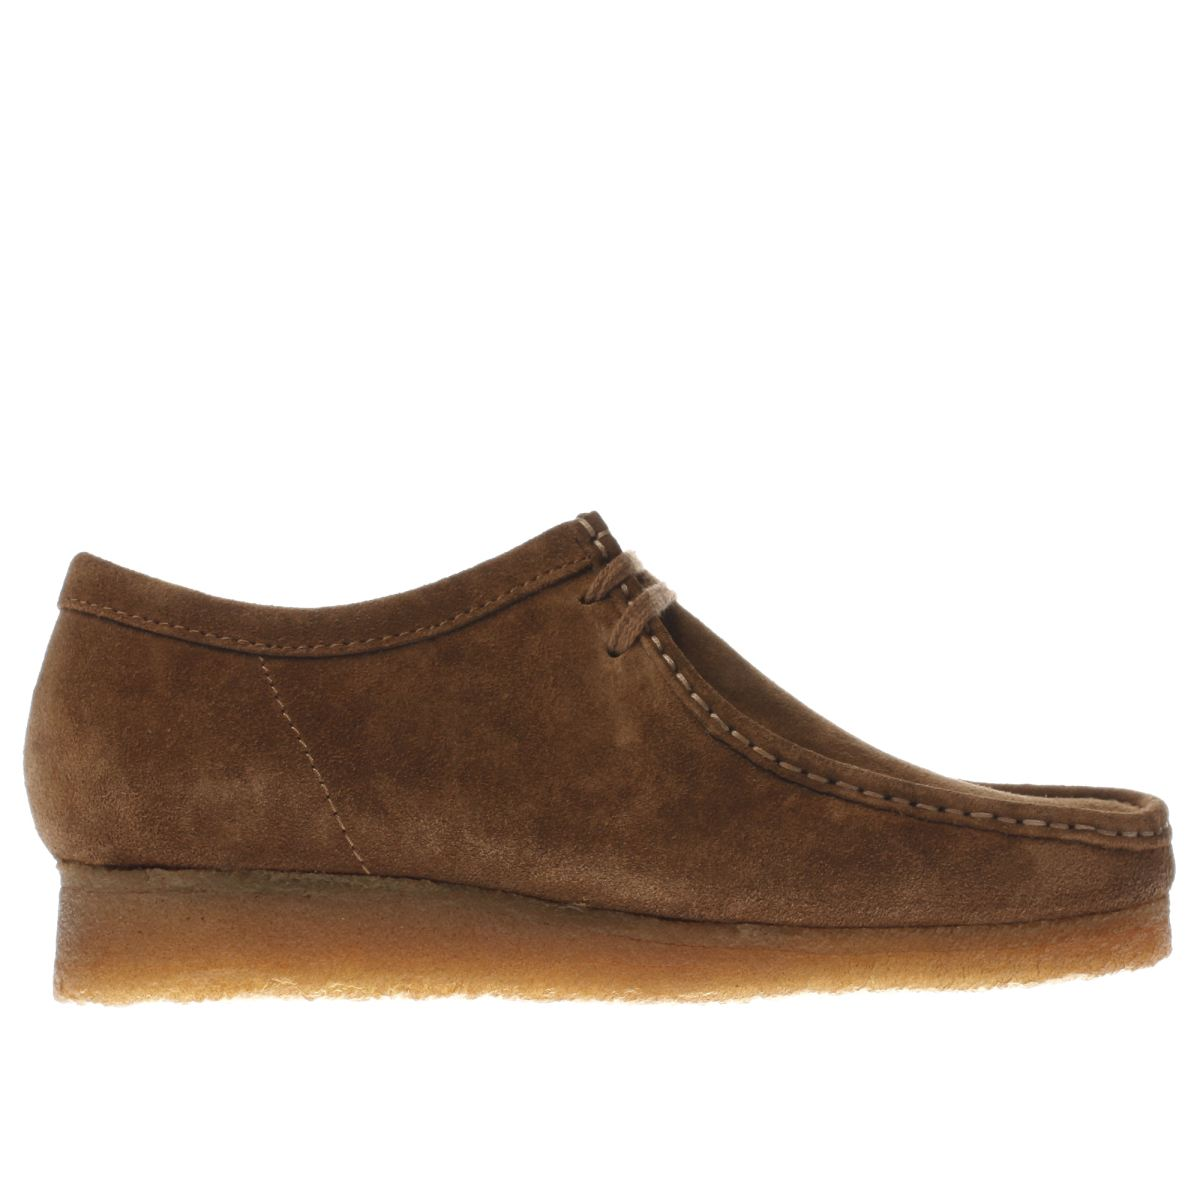 clarks originals brown wallabee shoes